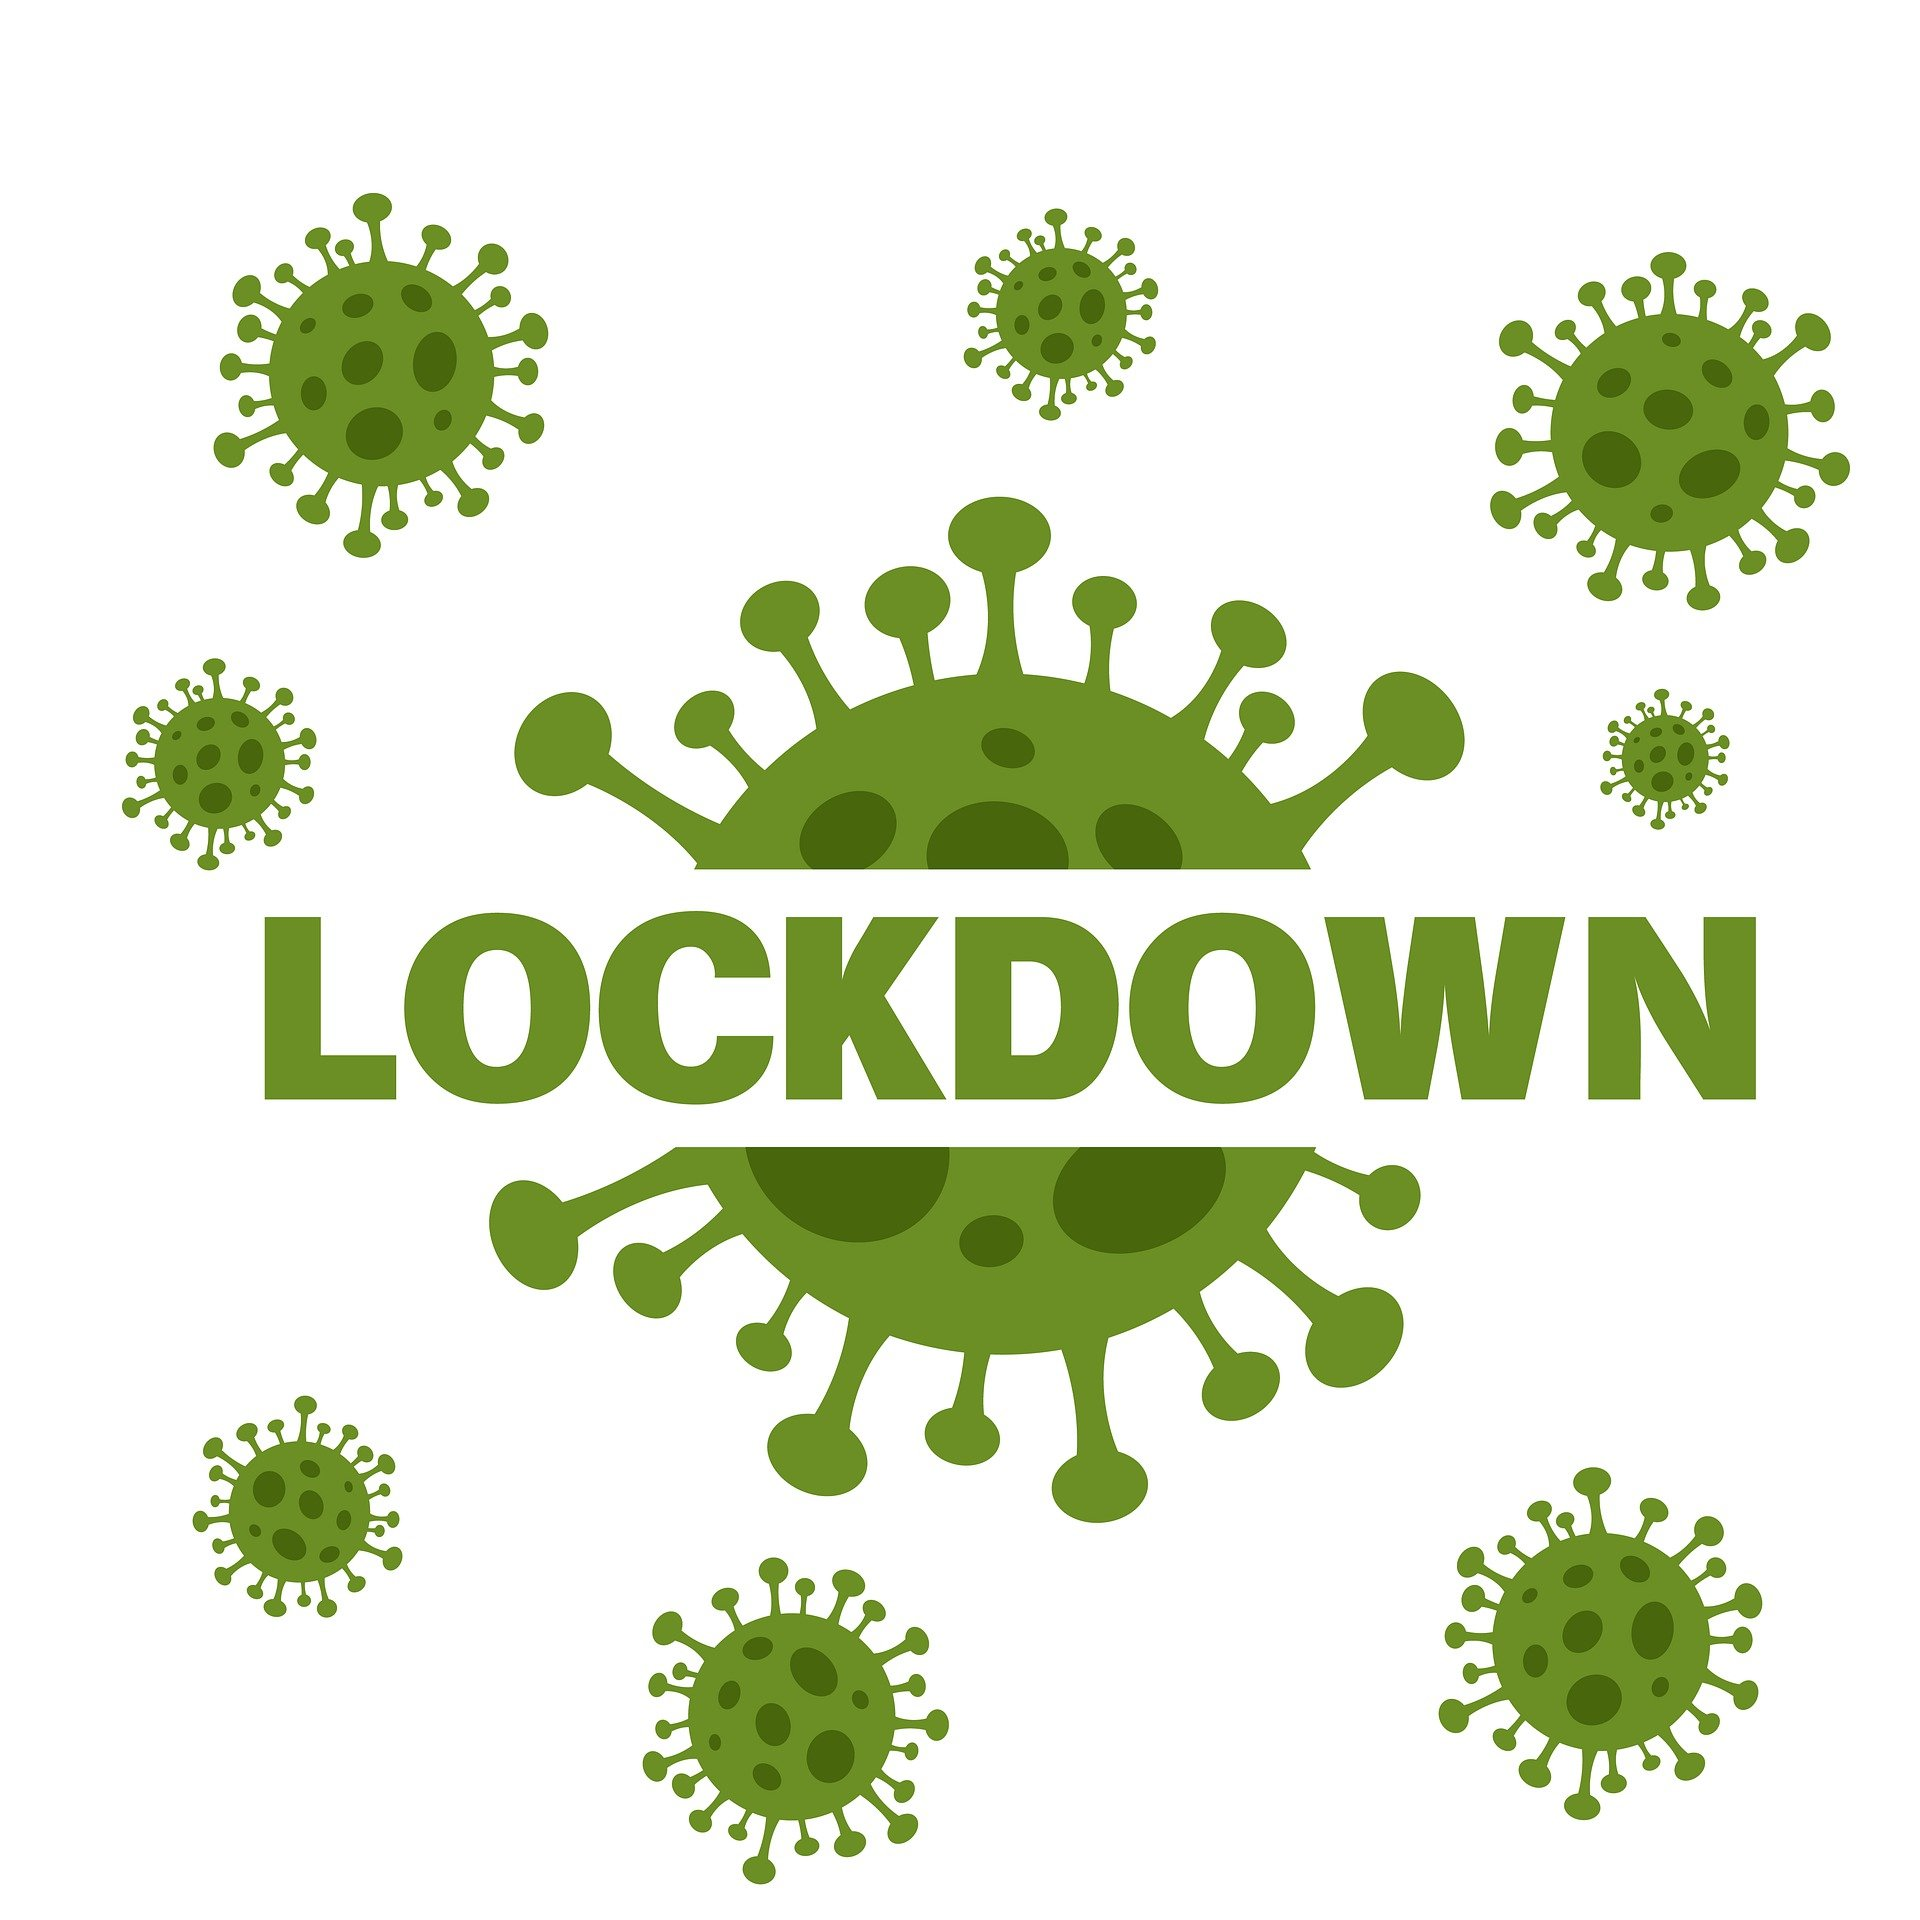 lockdown1920 (c) pixabay